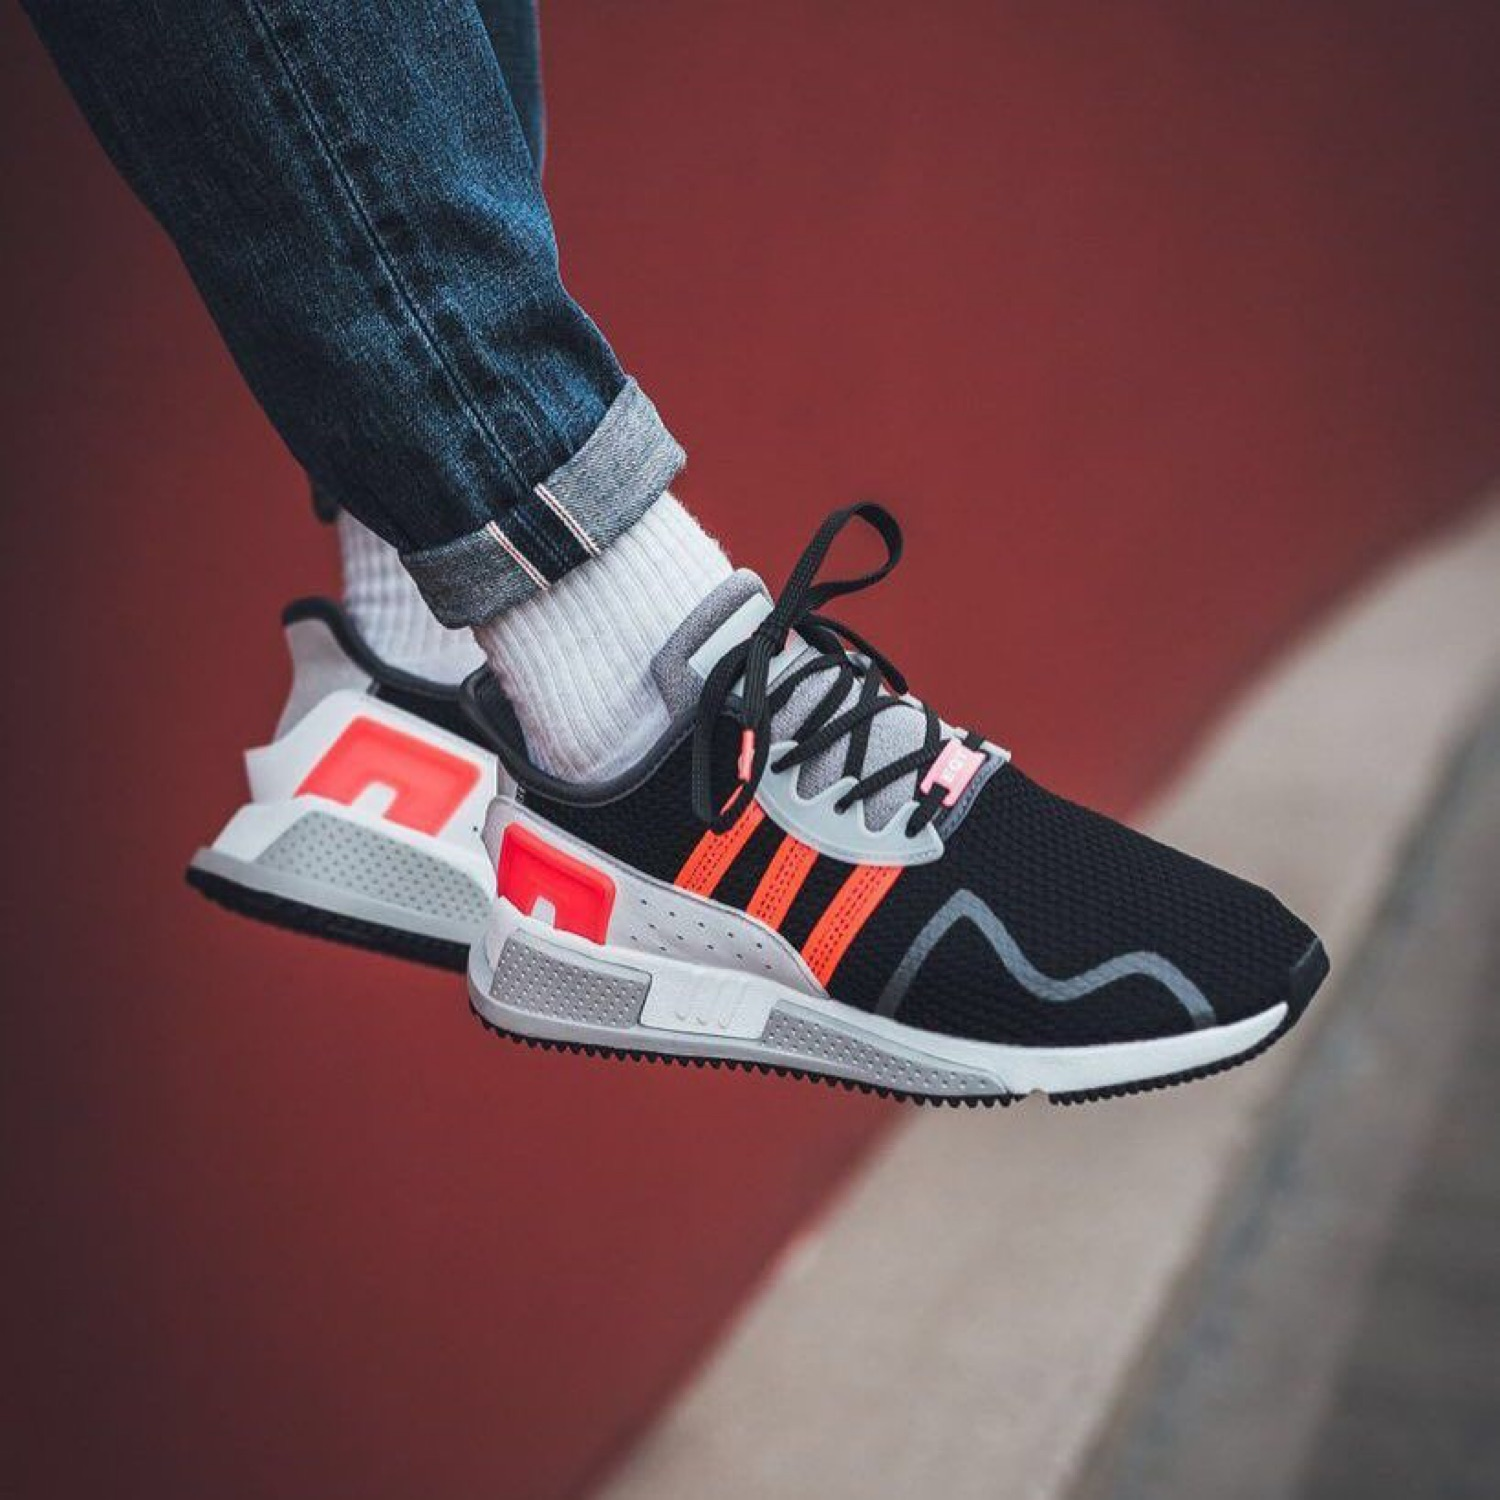 Adidas Eqt Adv Turbo Men